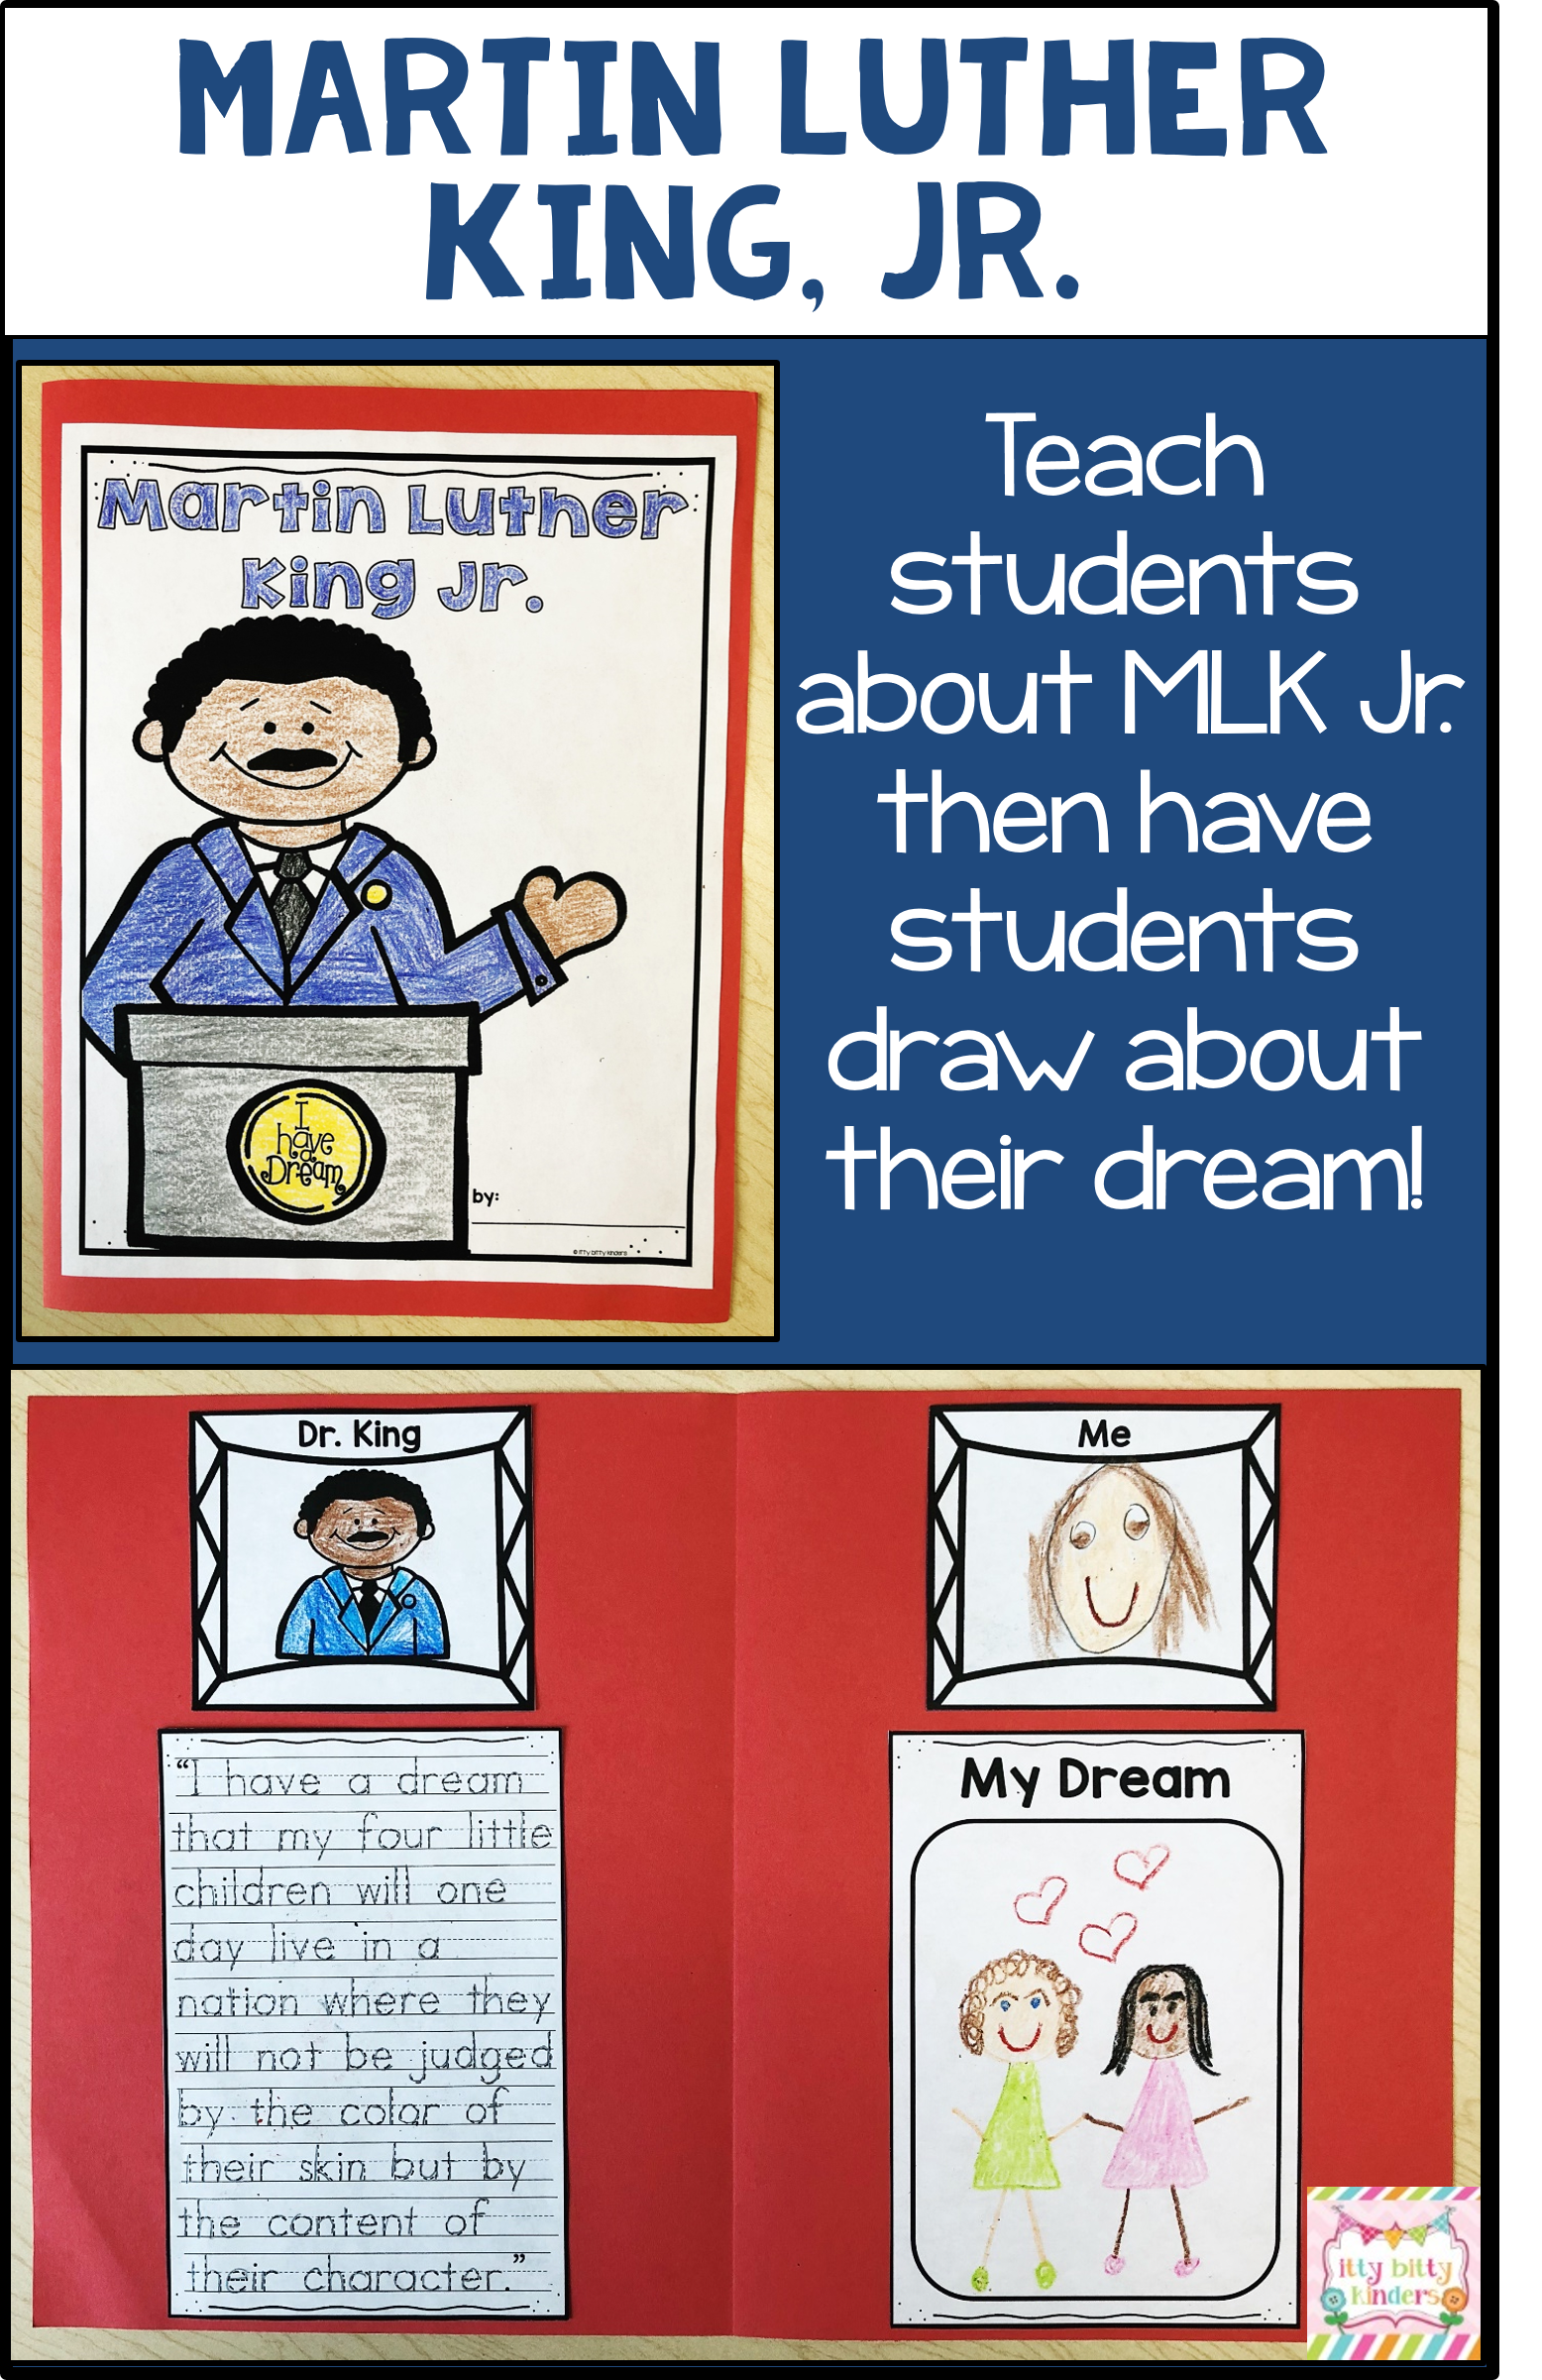 Martin Luther King Jr Mlk Dr King Peace Dream